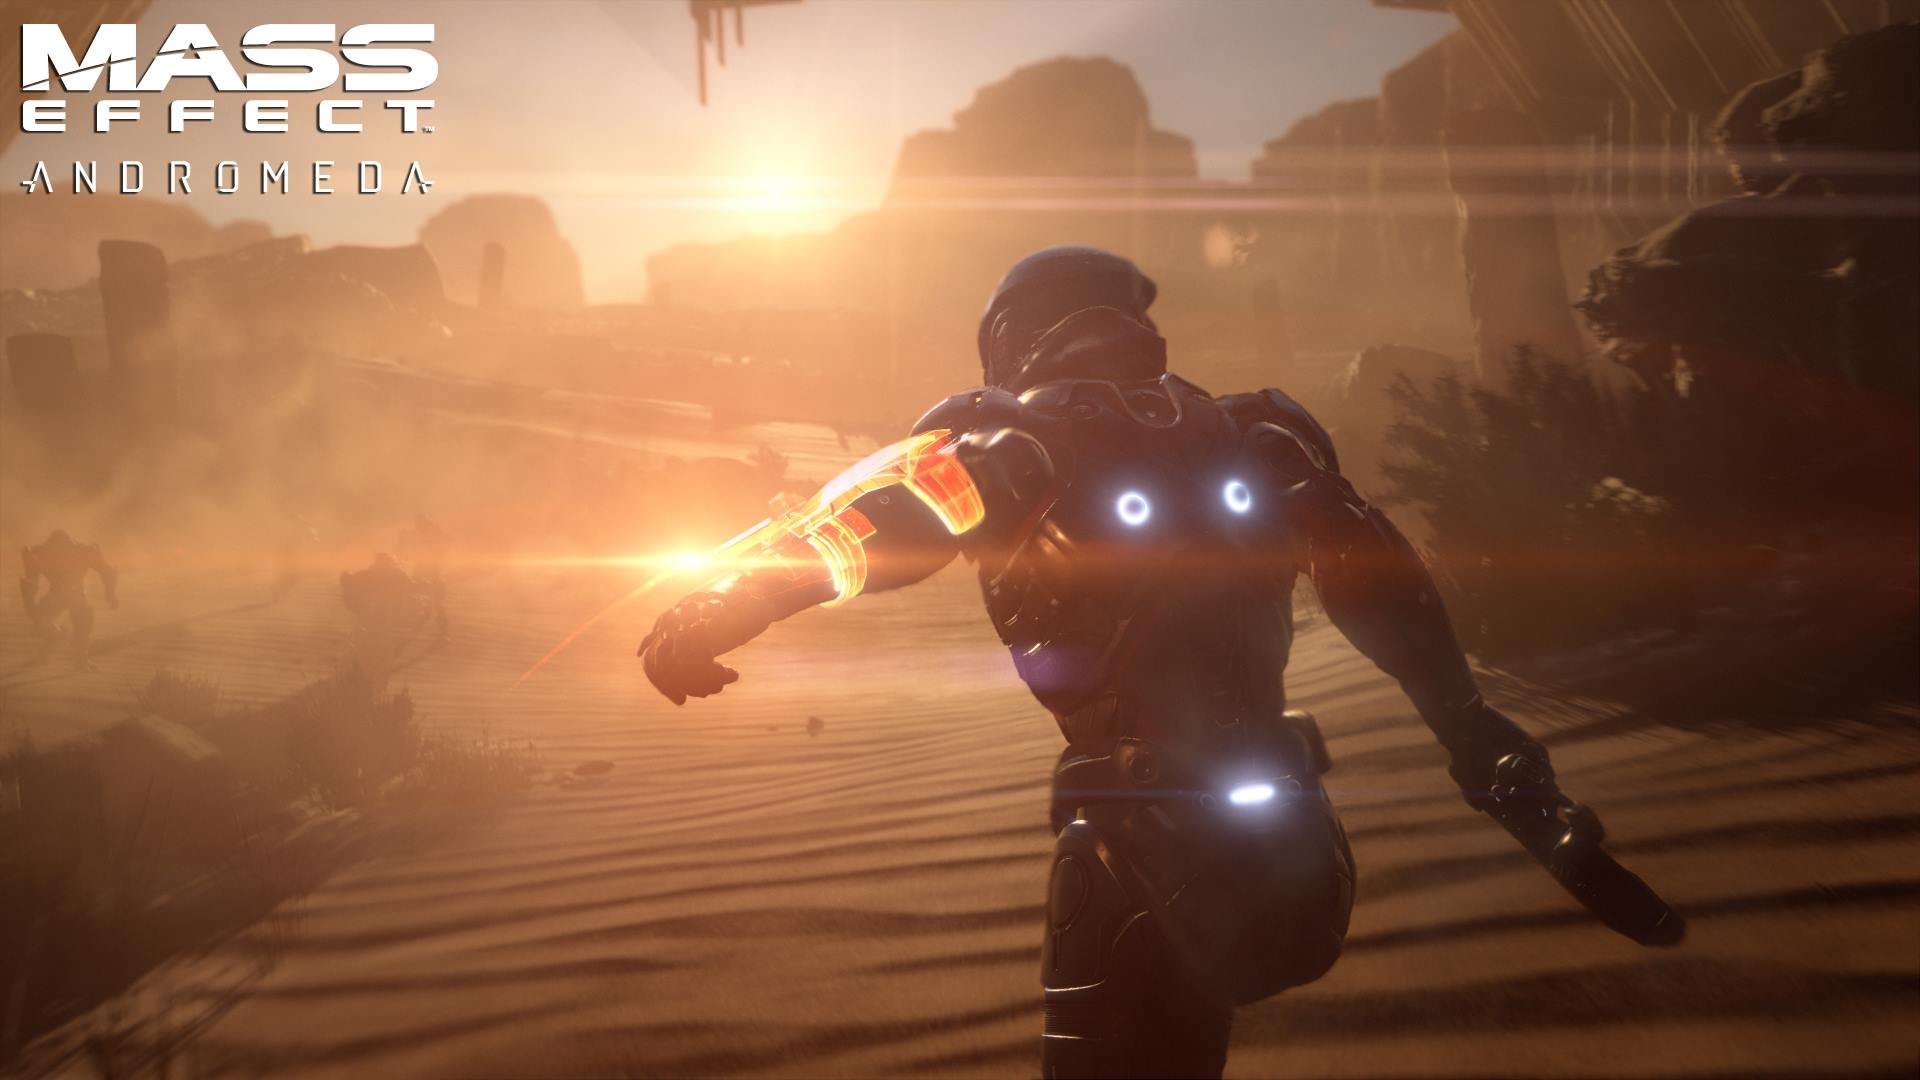 Mass Effect Andromeda Full Hd 3d Wallpapers: Mass Effect Andromeda, HD Games, 4k Wallpapers, Images